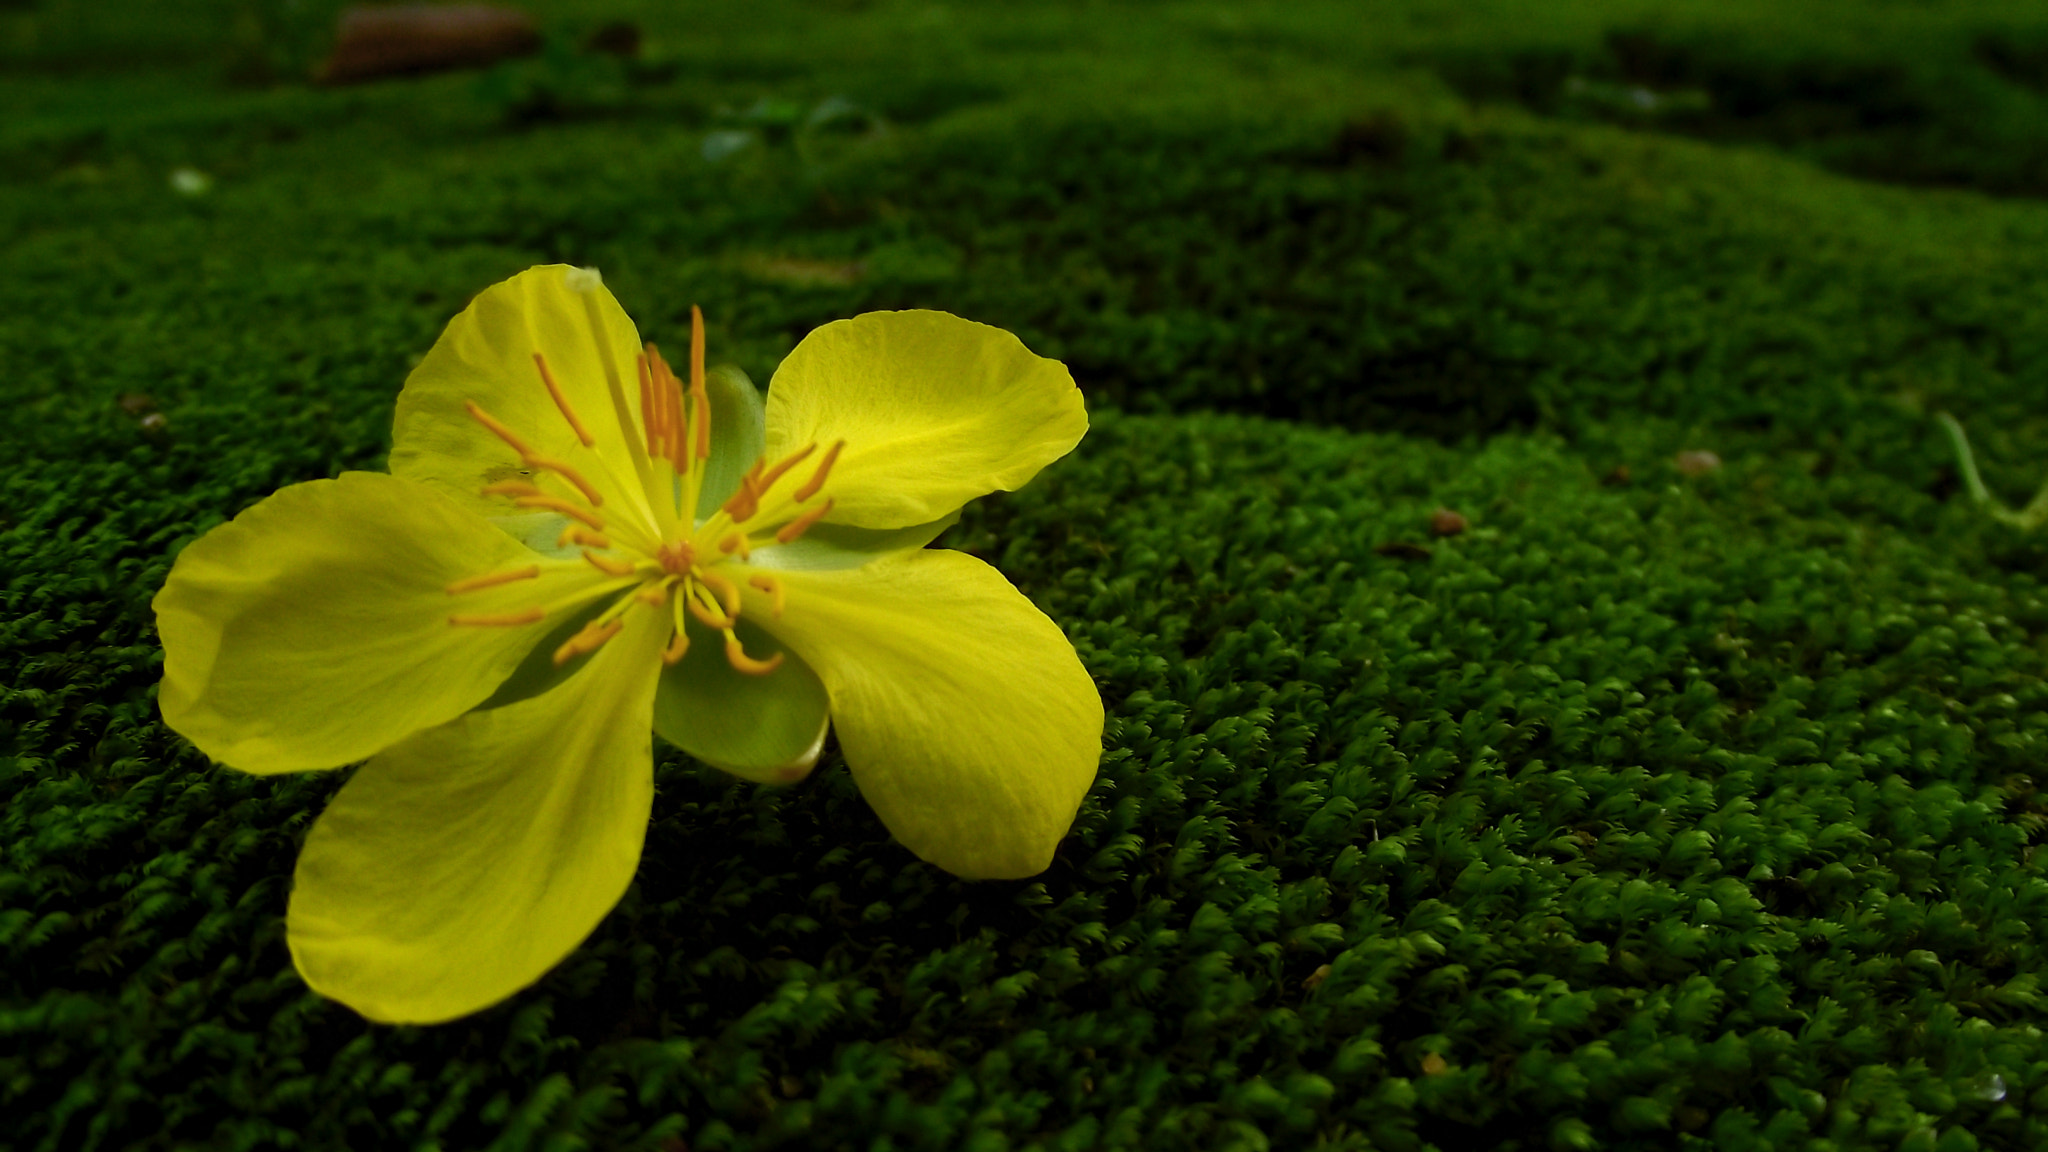 Photograph Untitled by Abhilash S on 500px